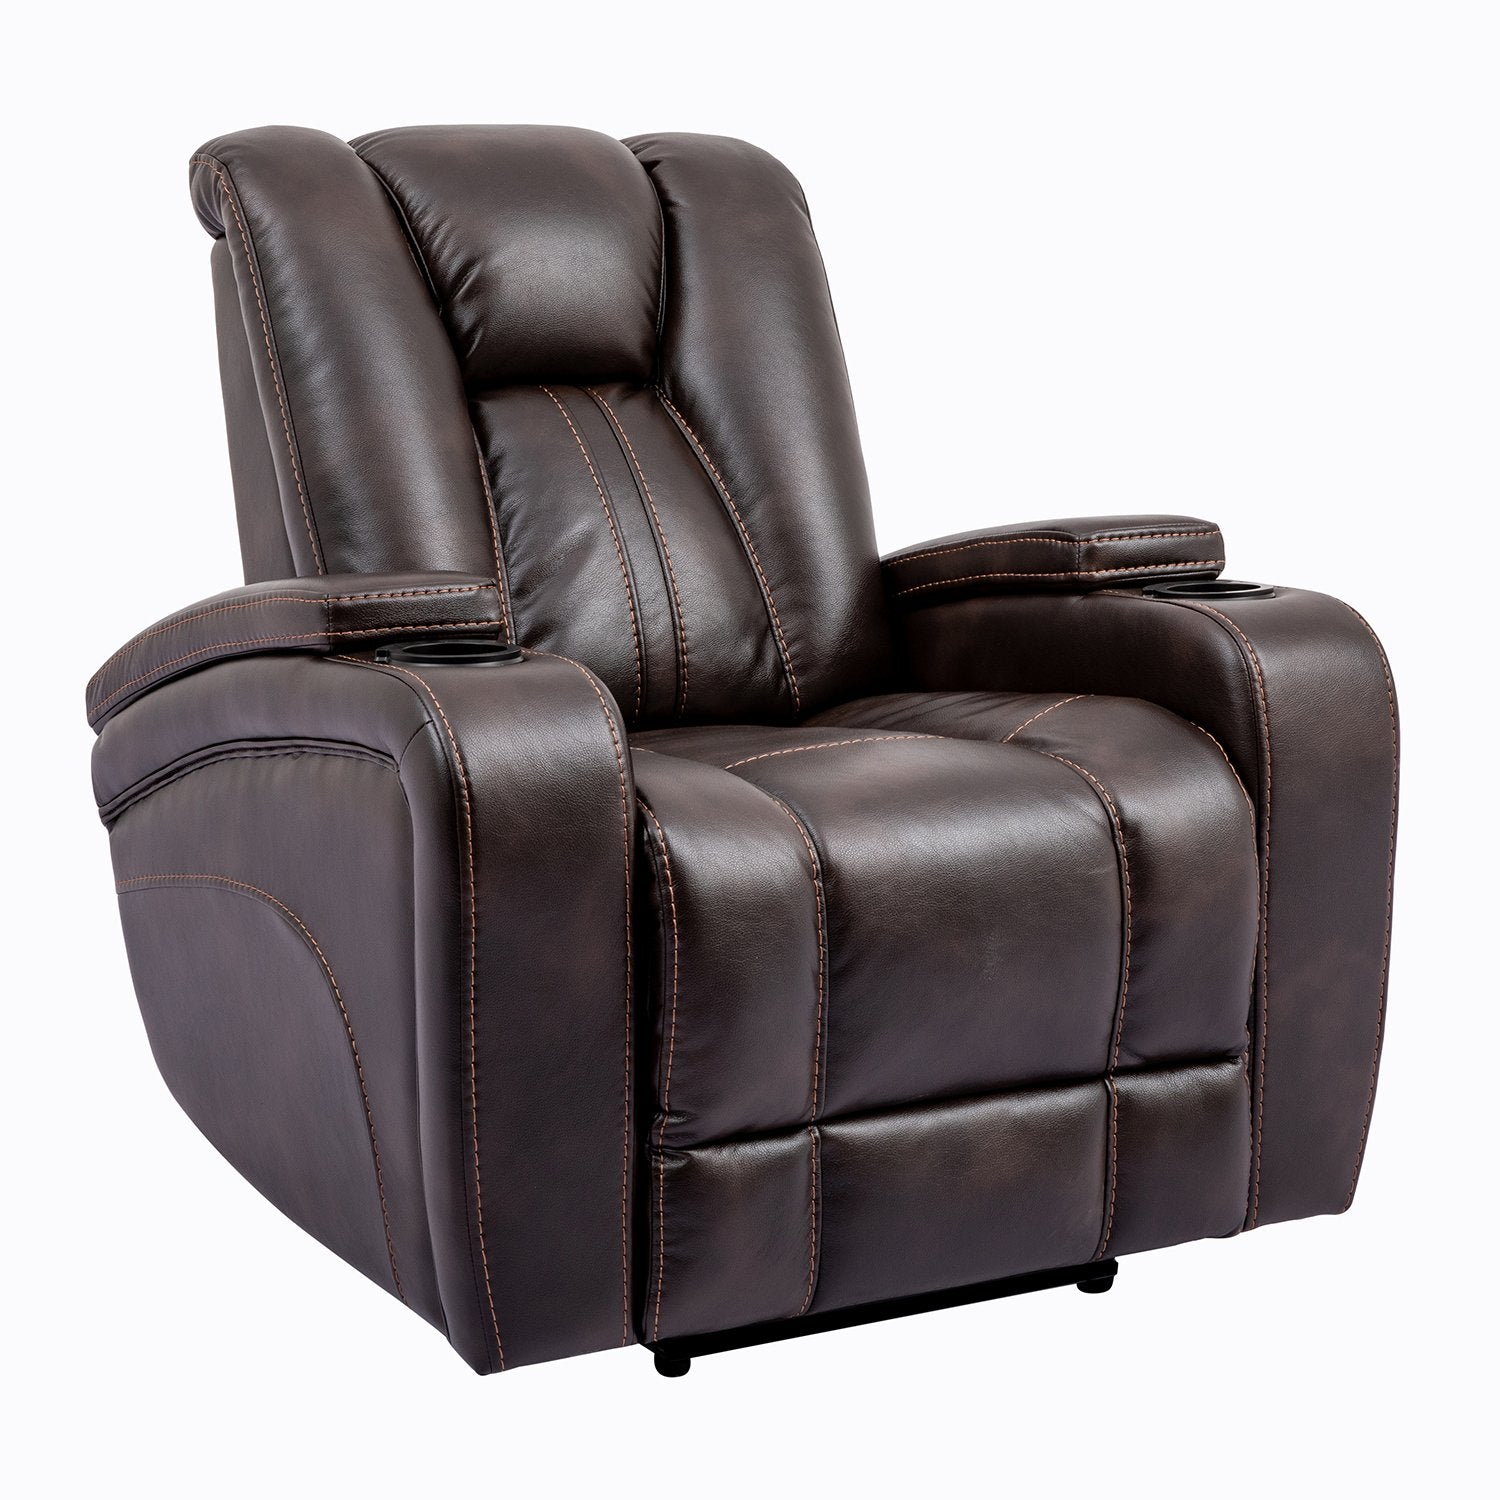 Optimus Truffle Power Recliner Parker House Furniture